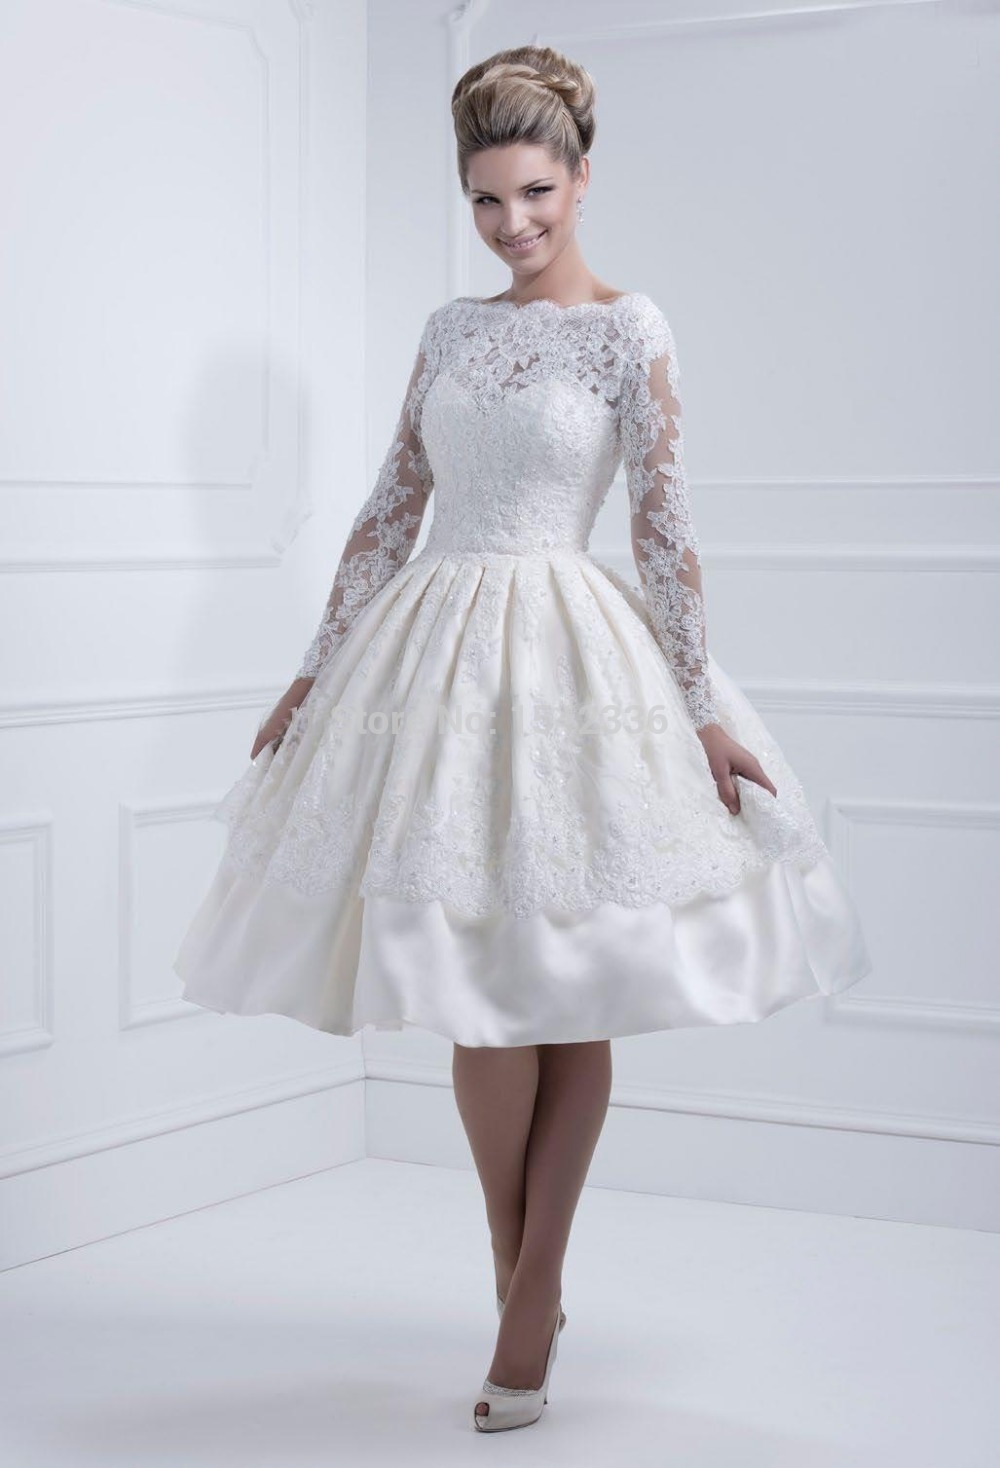 Lace long sleeves wedding dresses 2016 bateau neckline new for Knee length fitted wedding dresses